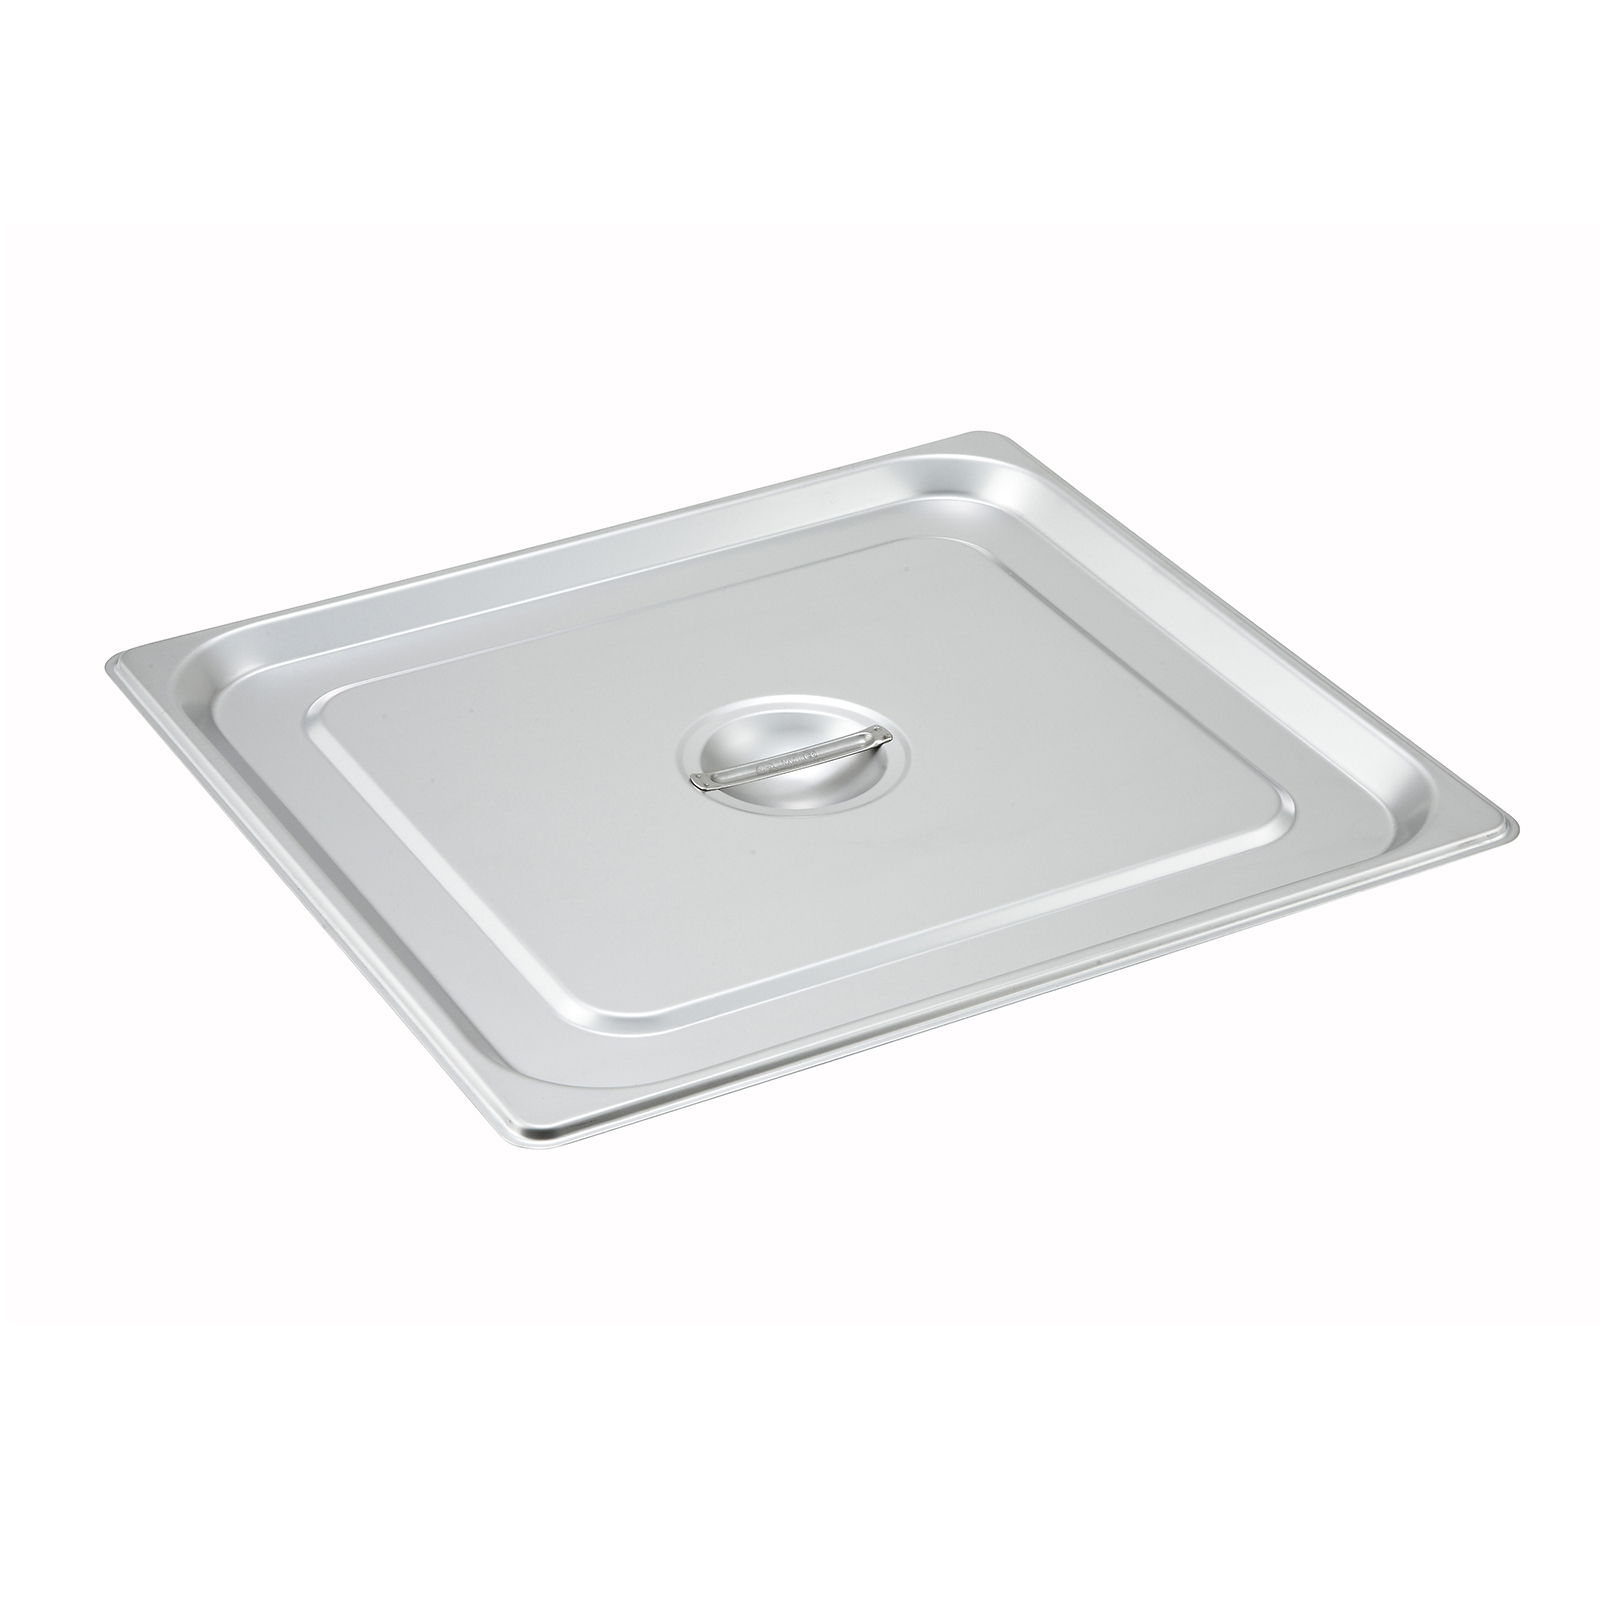 Winco SPSCTT steam table pan cover, stainless steel